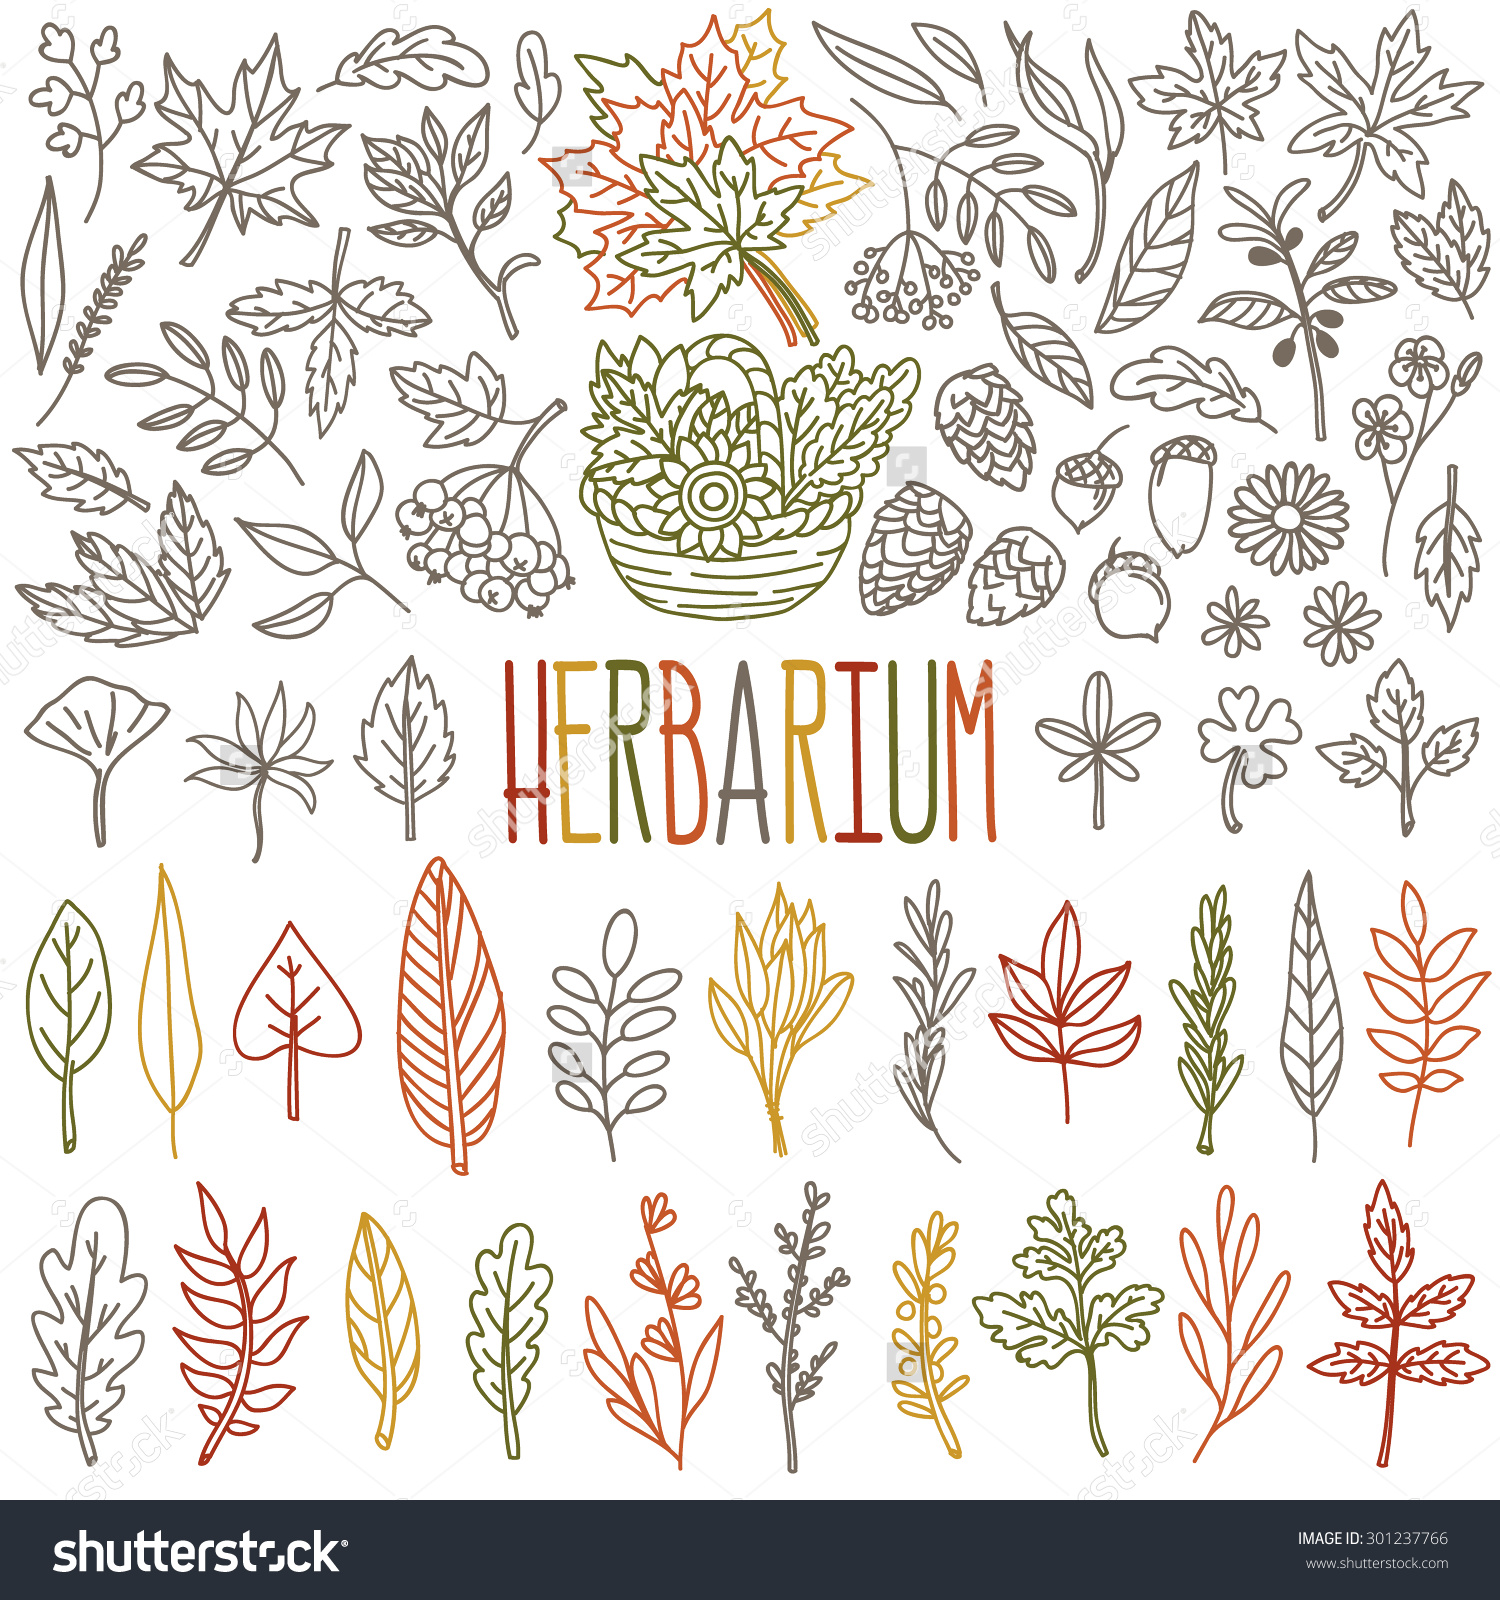 Herbarium Different Types Shapes Autumn Leafs Stock Vector.